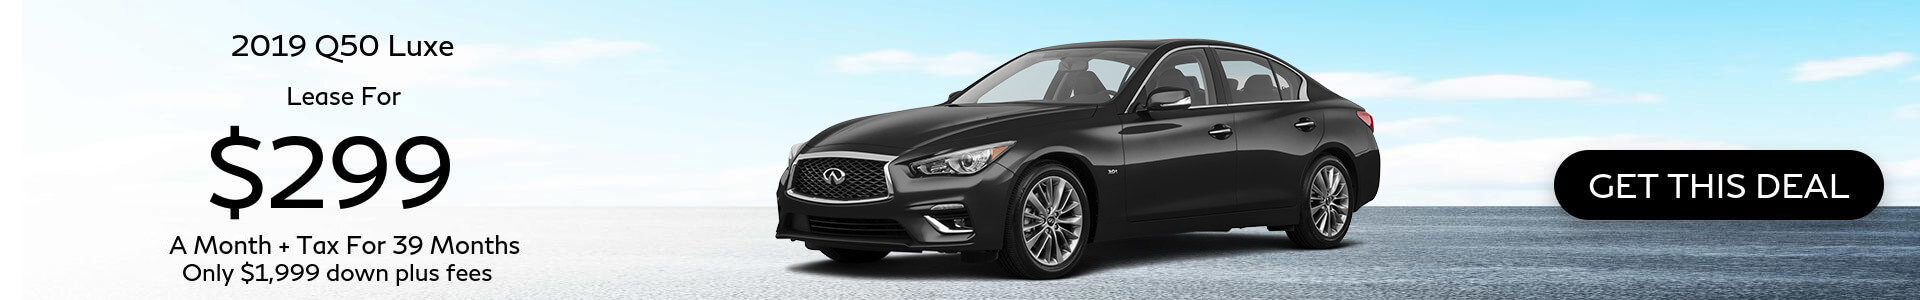 2019 Q50 - Lease for $299